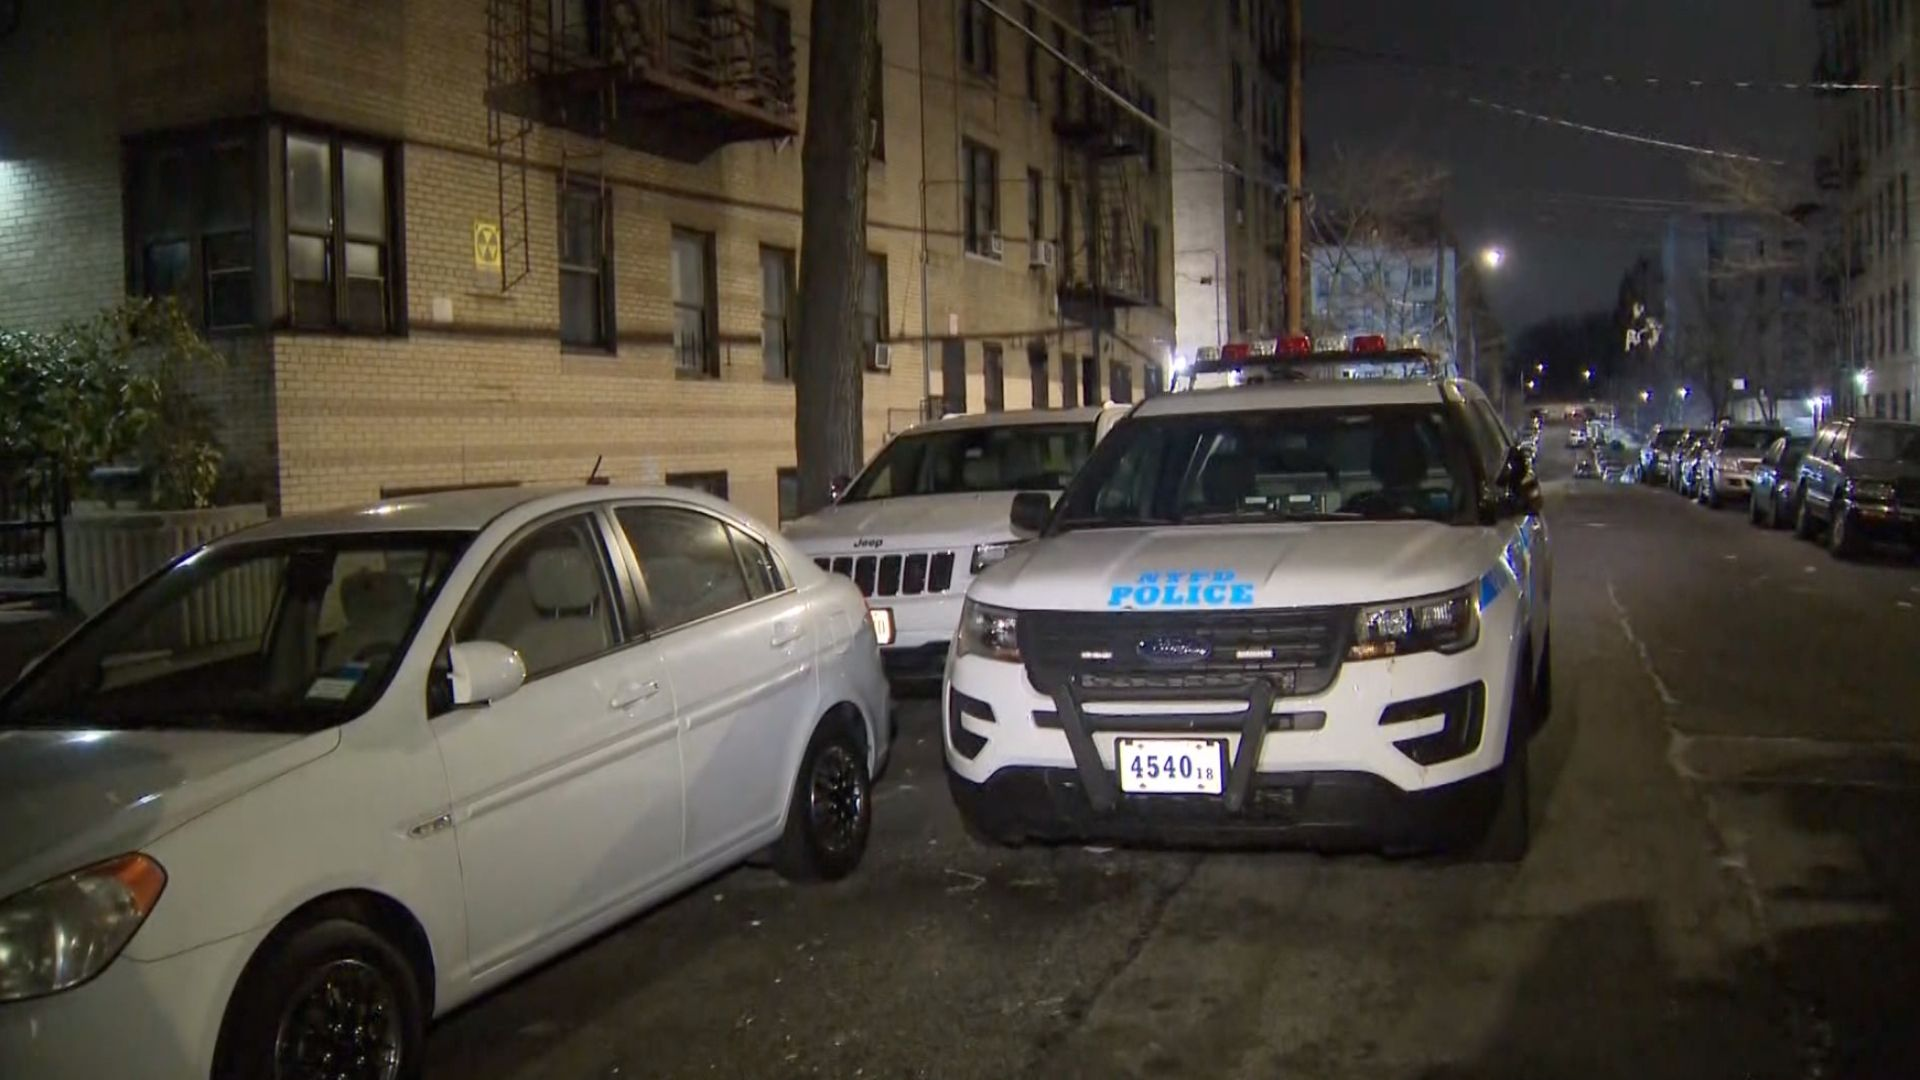 Police outside a Bronx building after a 20-year-old woman was fatally shot in the head inside a Norwood apartment on March 17, 2021, according to the NYPD said. (PIX11 News)